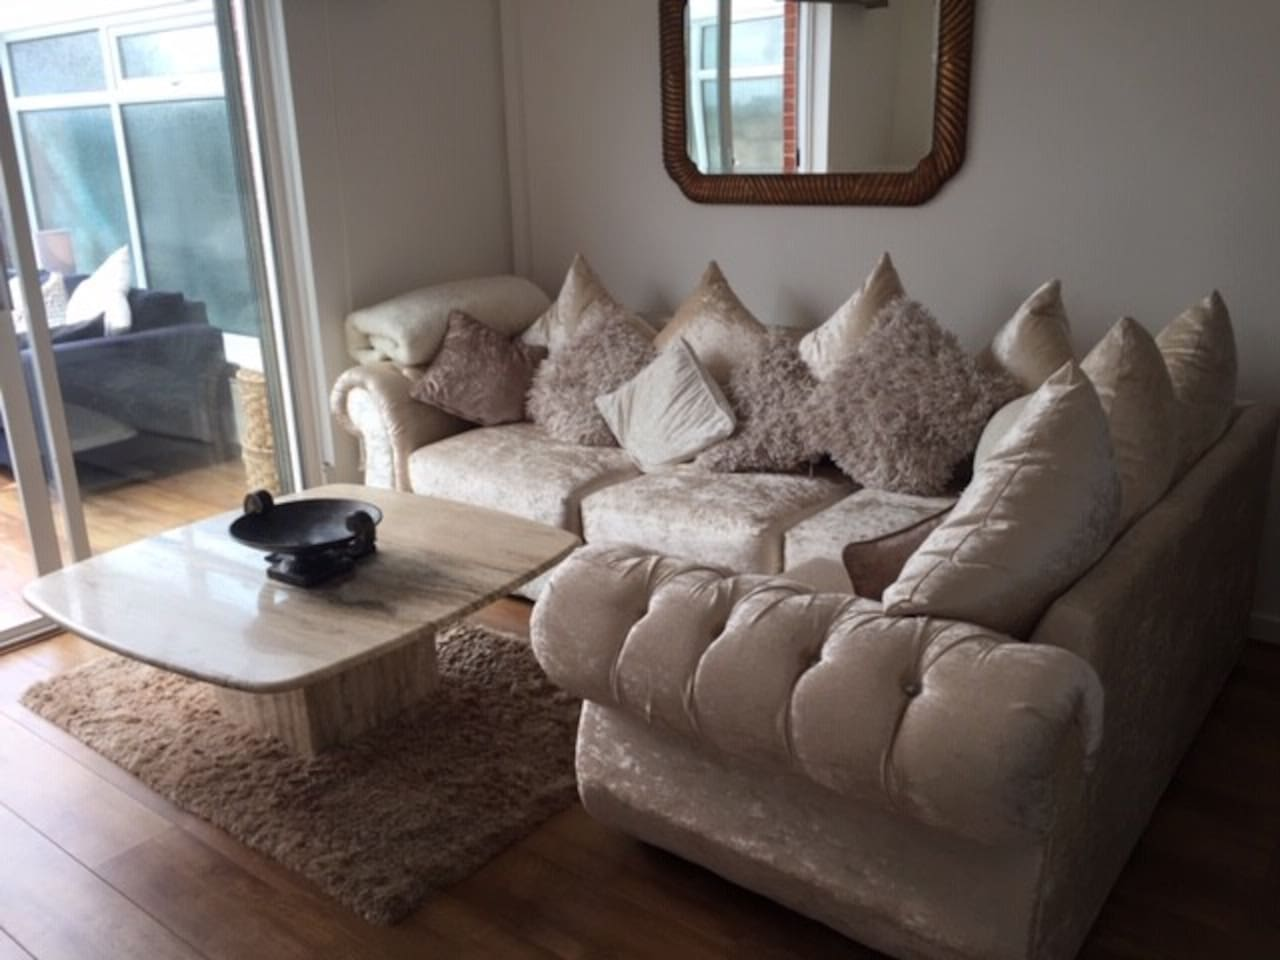 Picture yourself all cosy on this beautiful spacious and comfortable sofa perfect for snuggling up to a loved one.